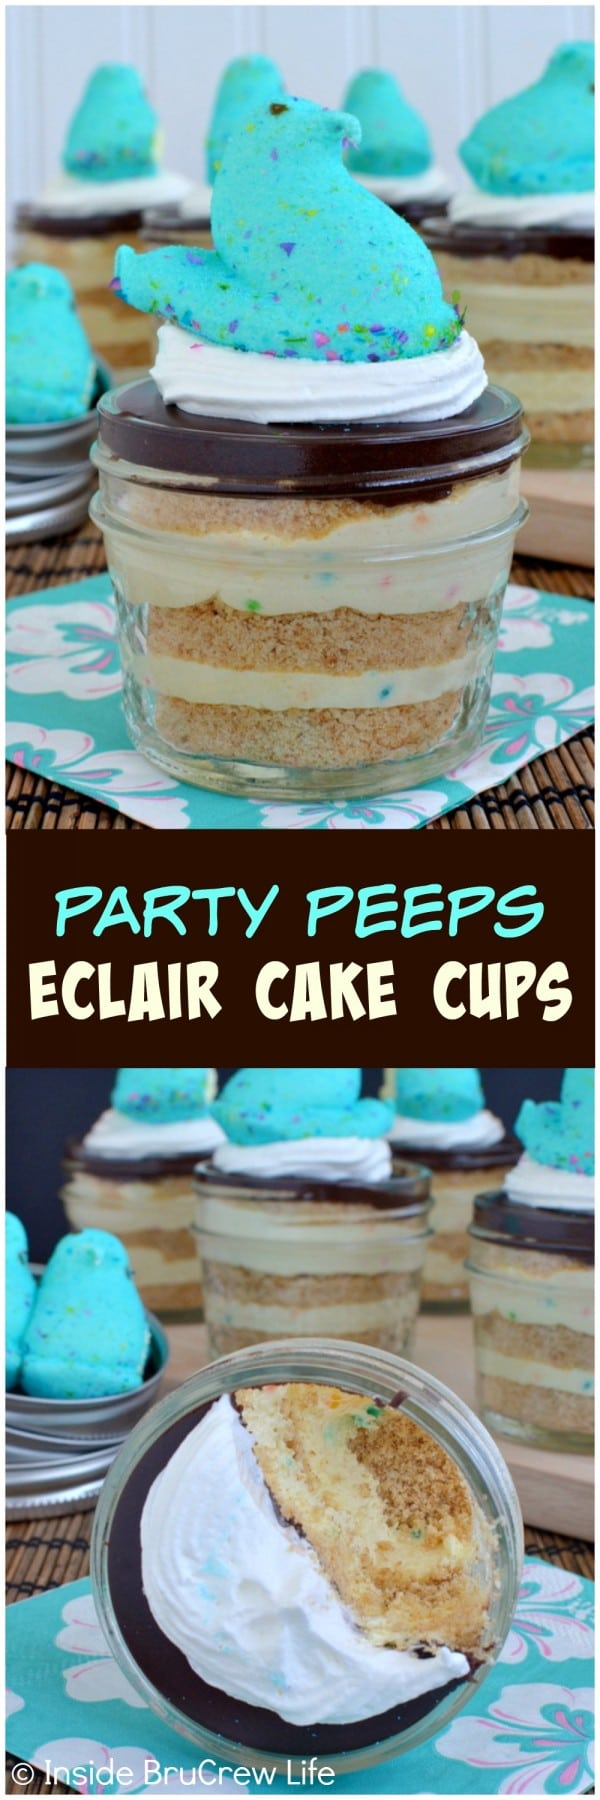 Party Peeps Eclair Cake Cups - layers of cake batter pudding, graham crackers, & pudding makes these a fun Easter dessert recipe.